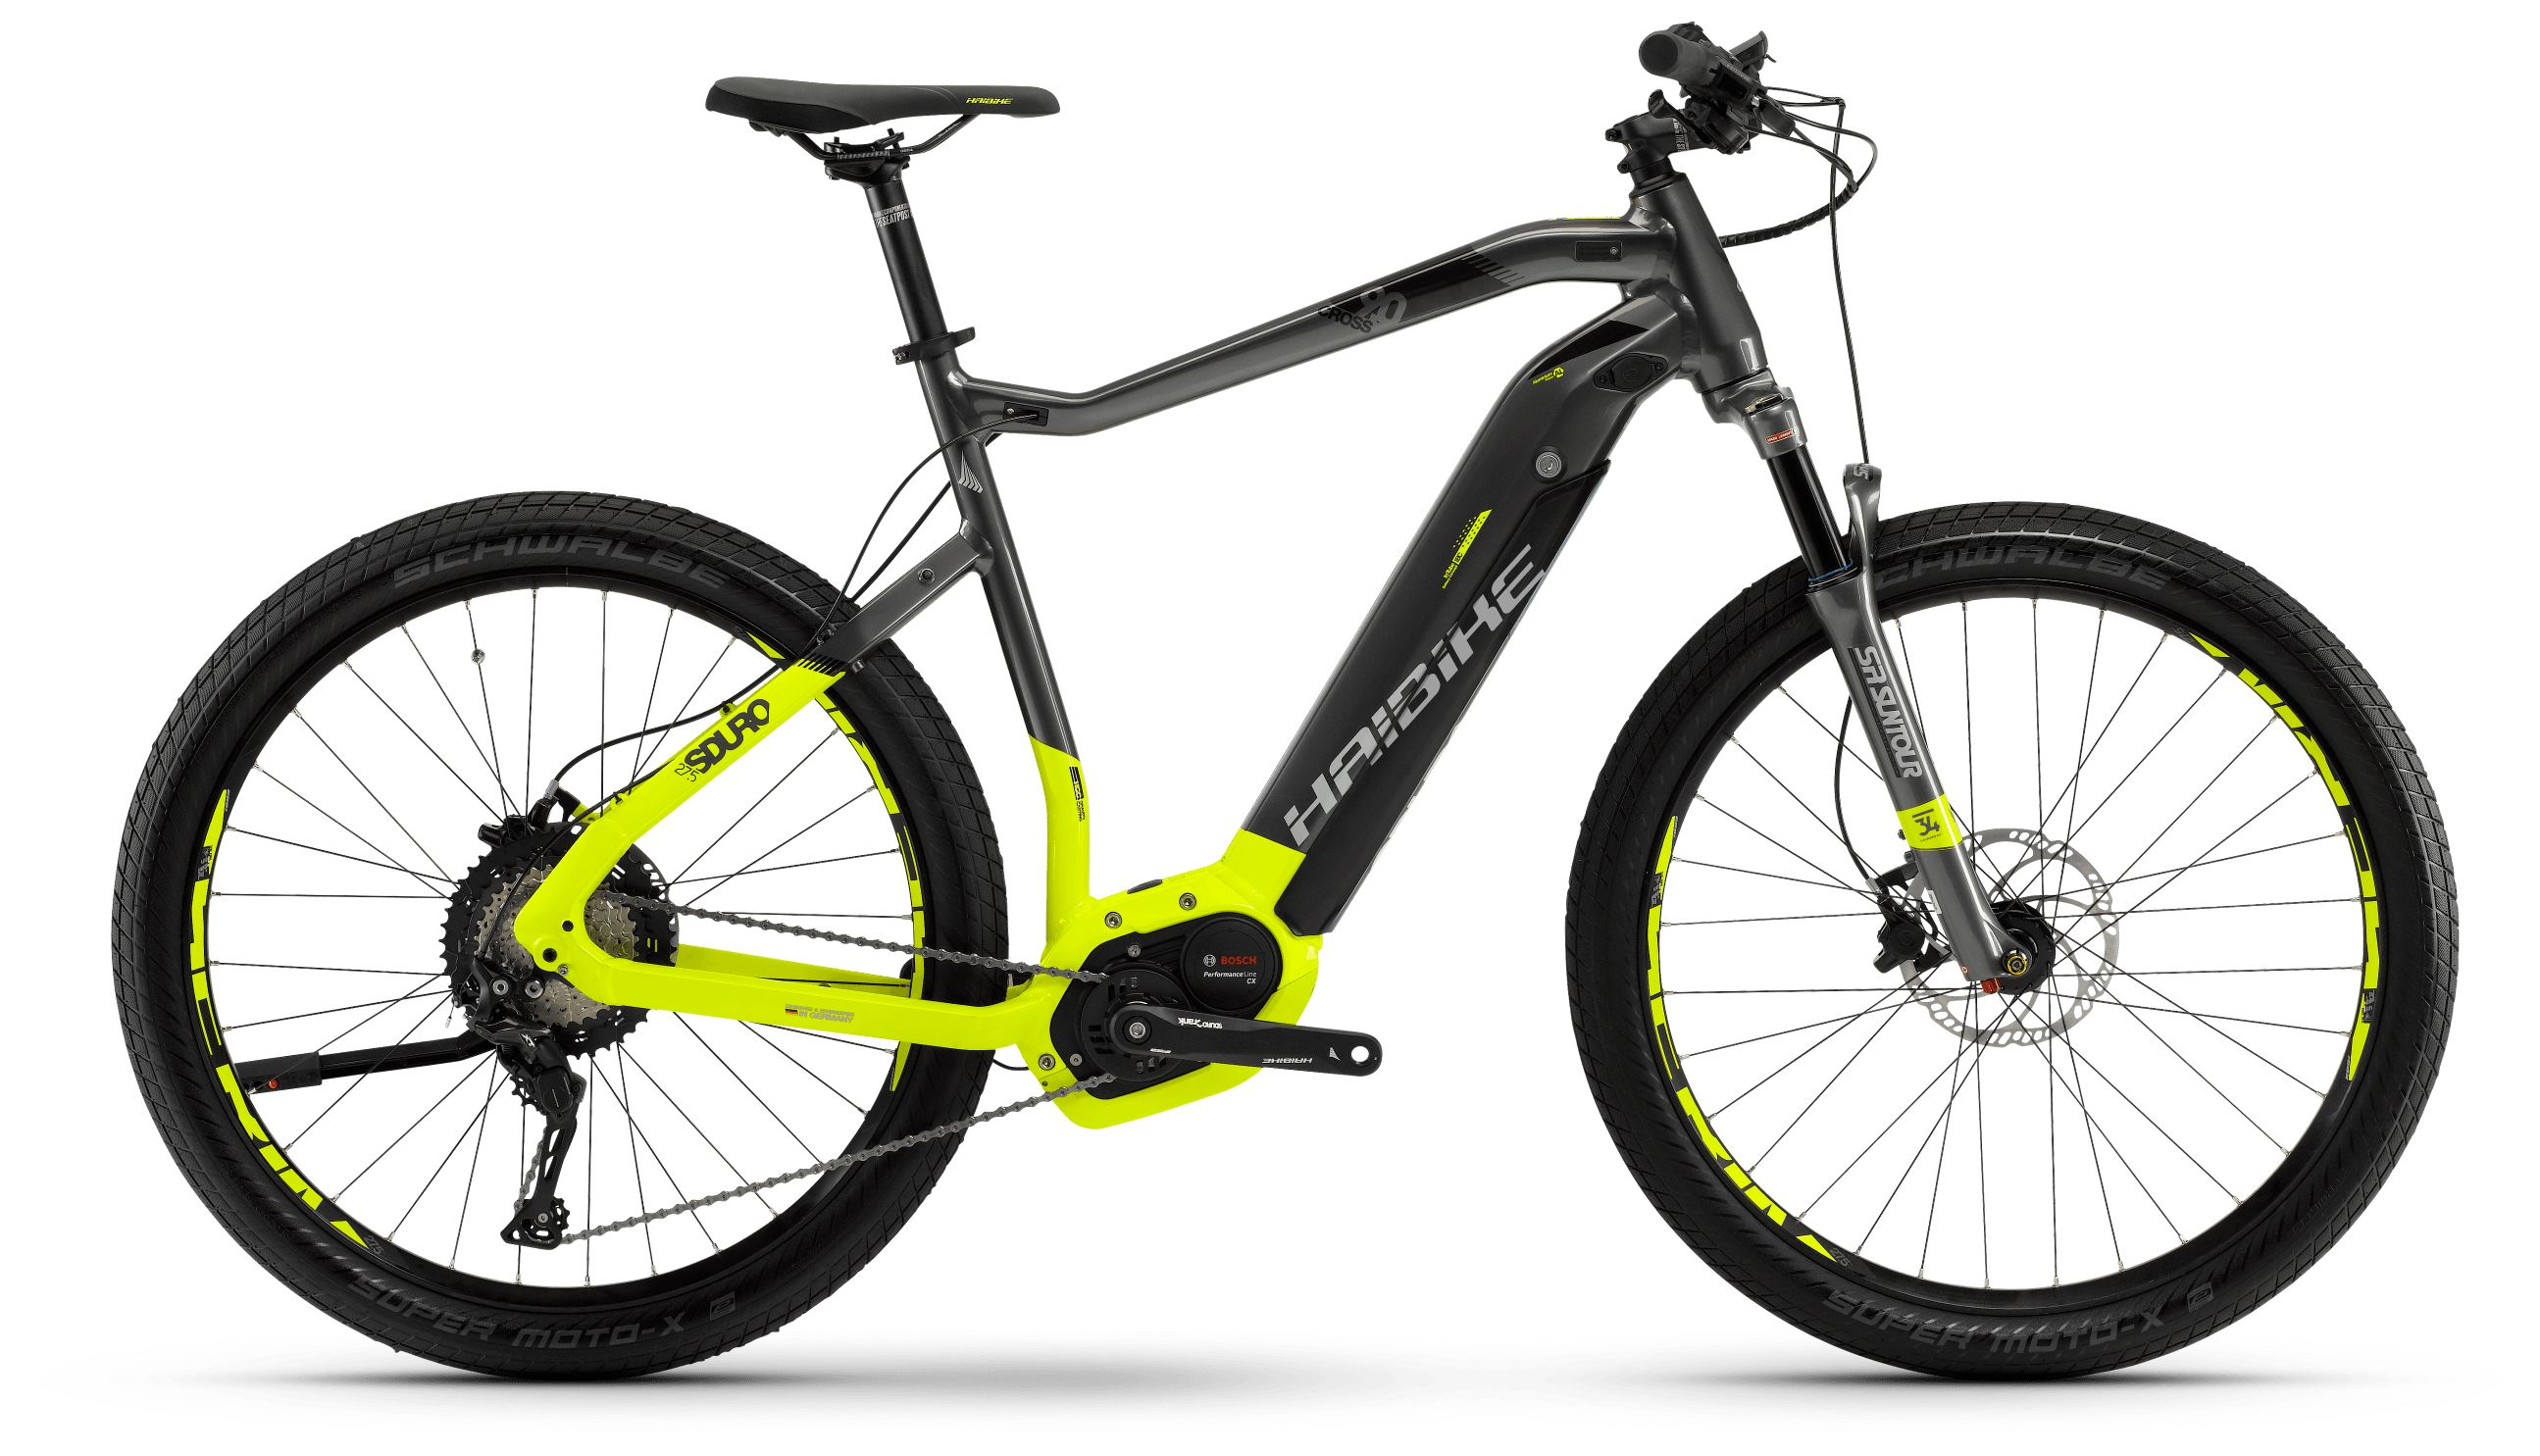 Велосипед Haibike Sduro Cross 9.0 men 500Wh 11s XT 2018 велосипед haibike xduro fatsix 9 0 500wh 11s nx 2018